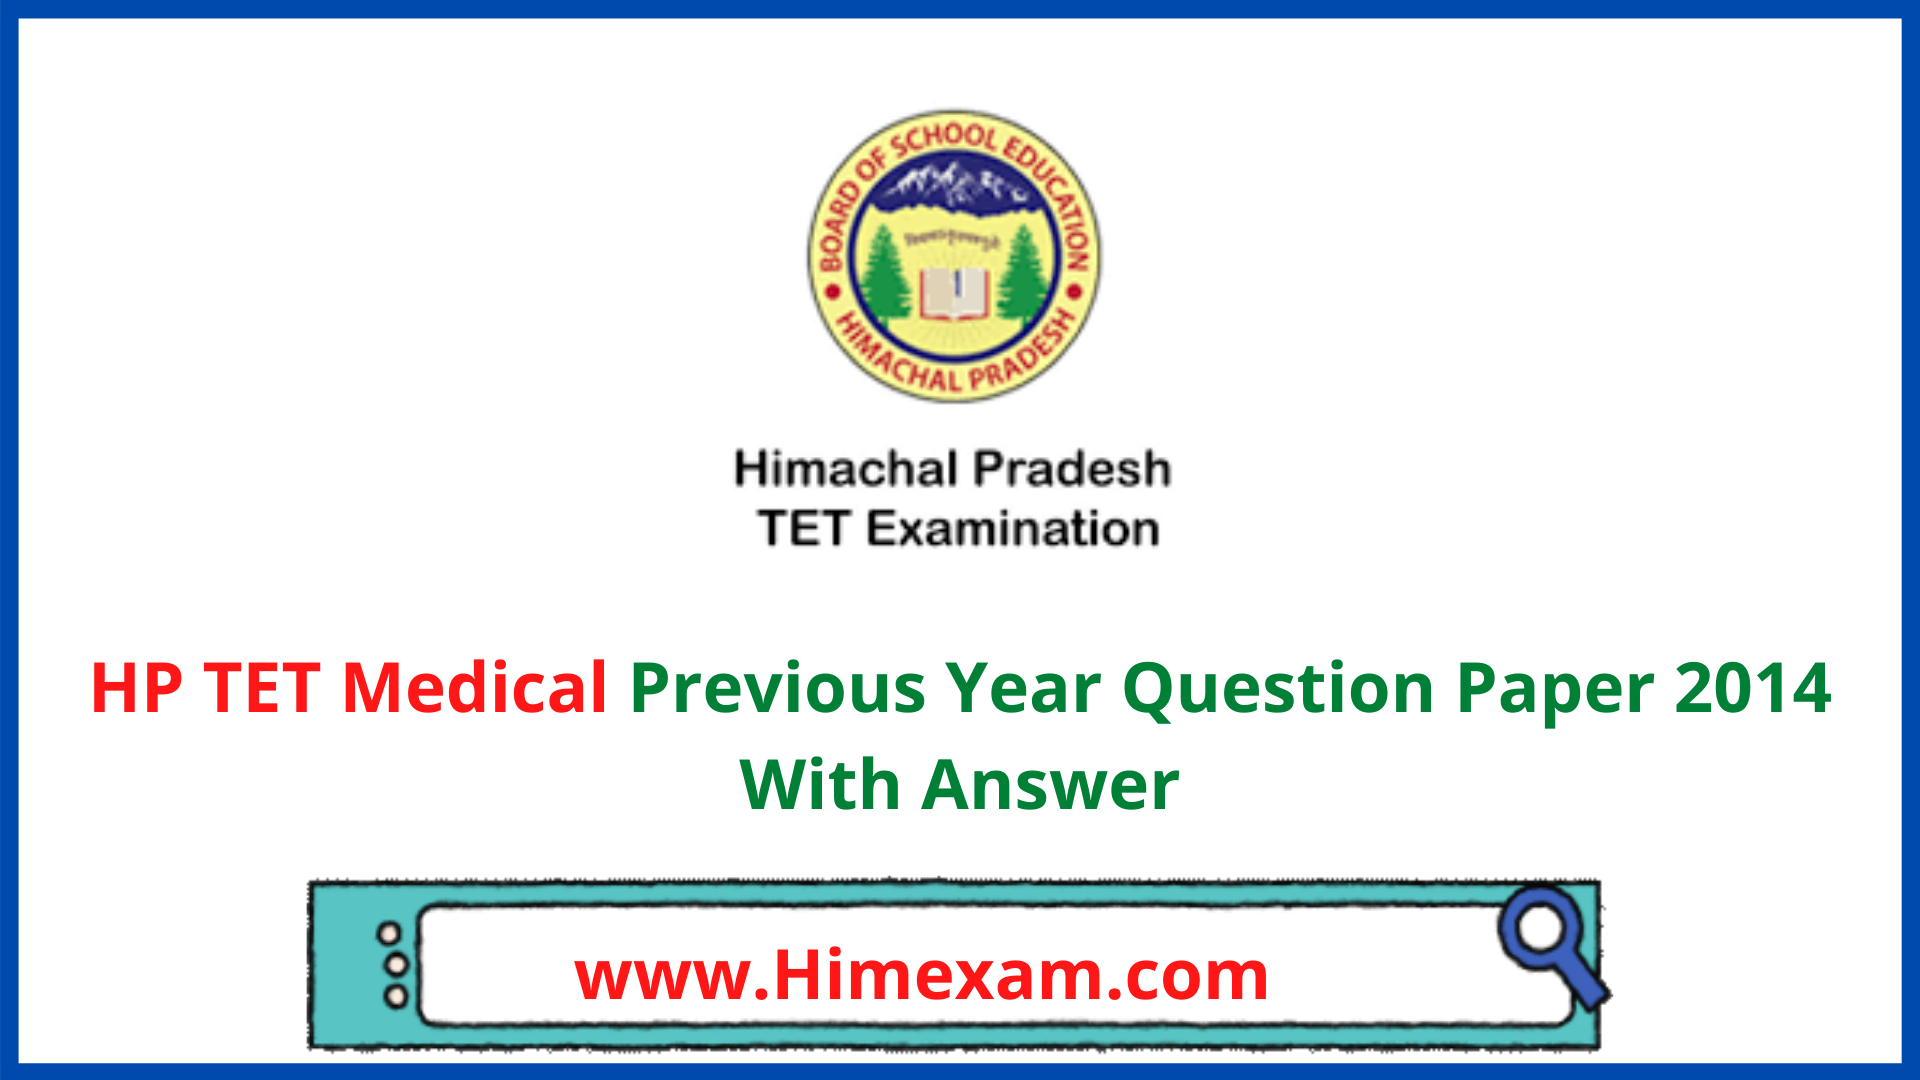 HP TET Medical Previous Year Question Paper 2014 With Answer